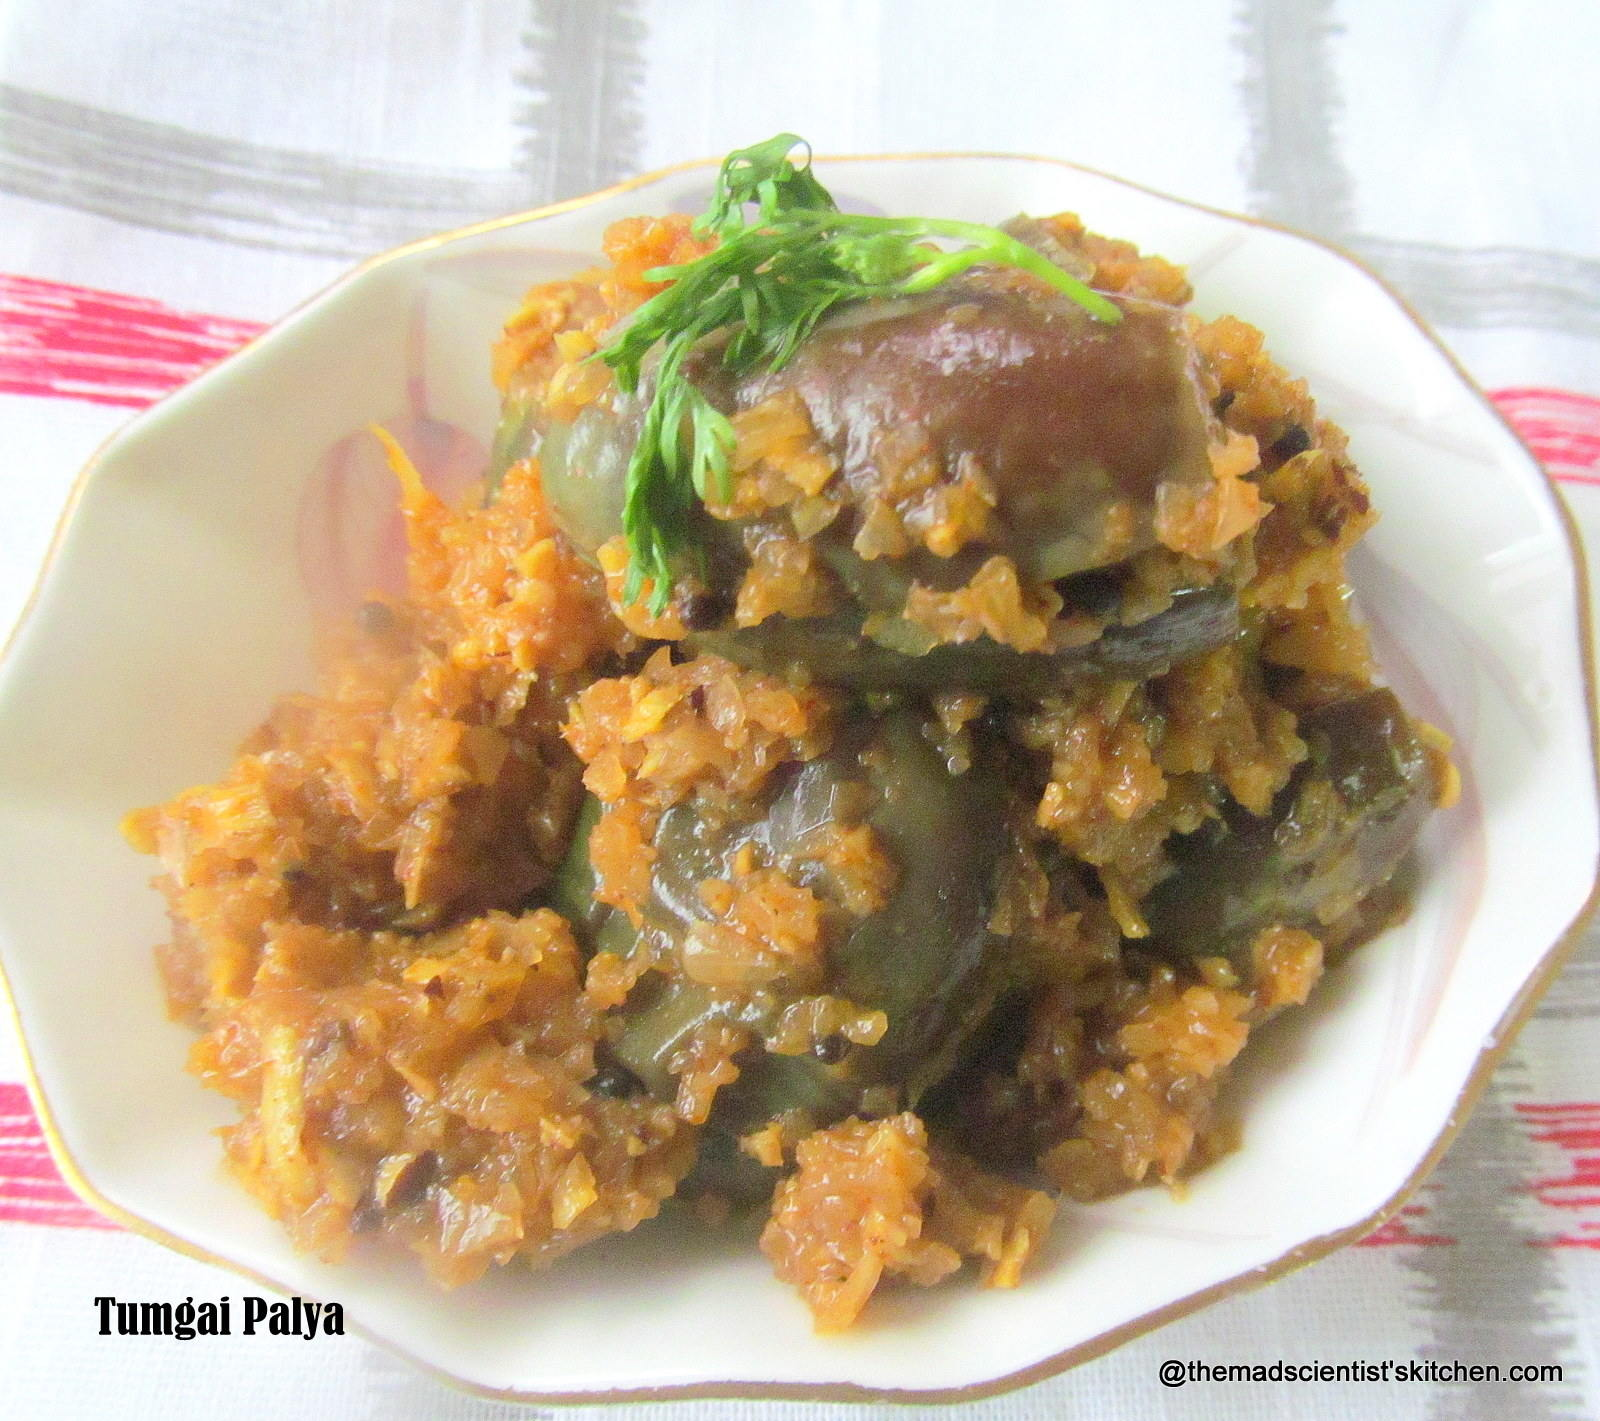 Tumgai Palya,Veggies that are Fruits